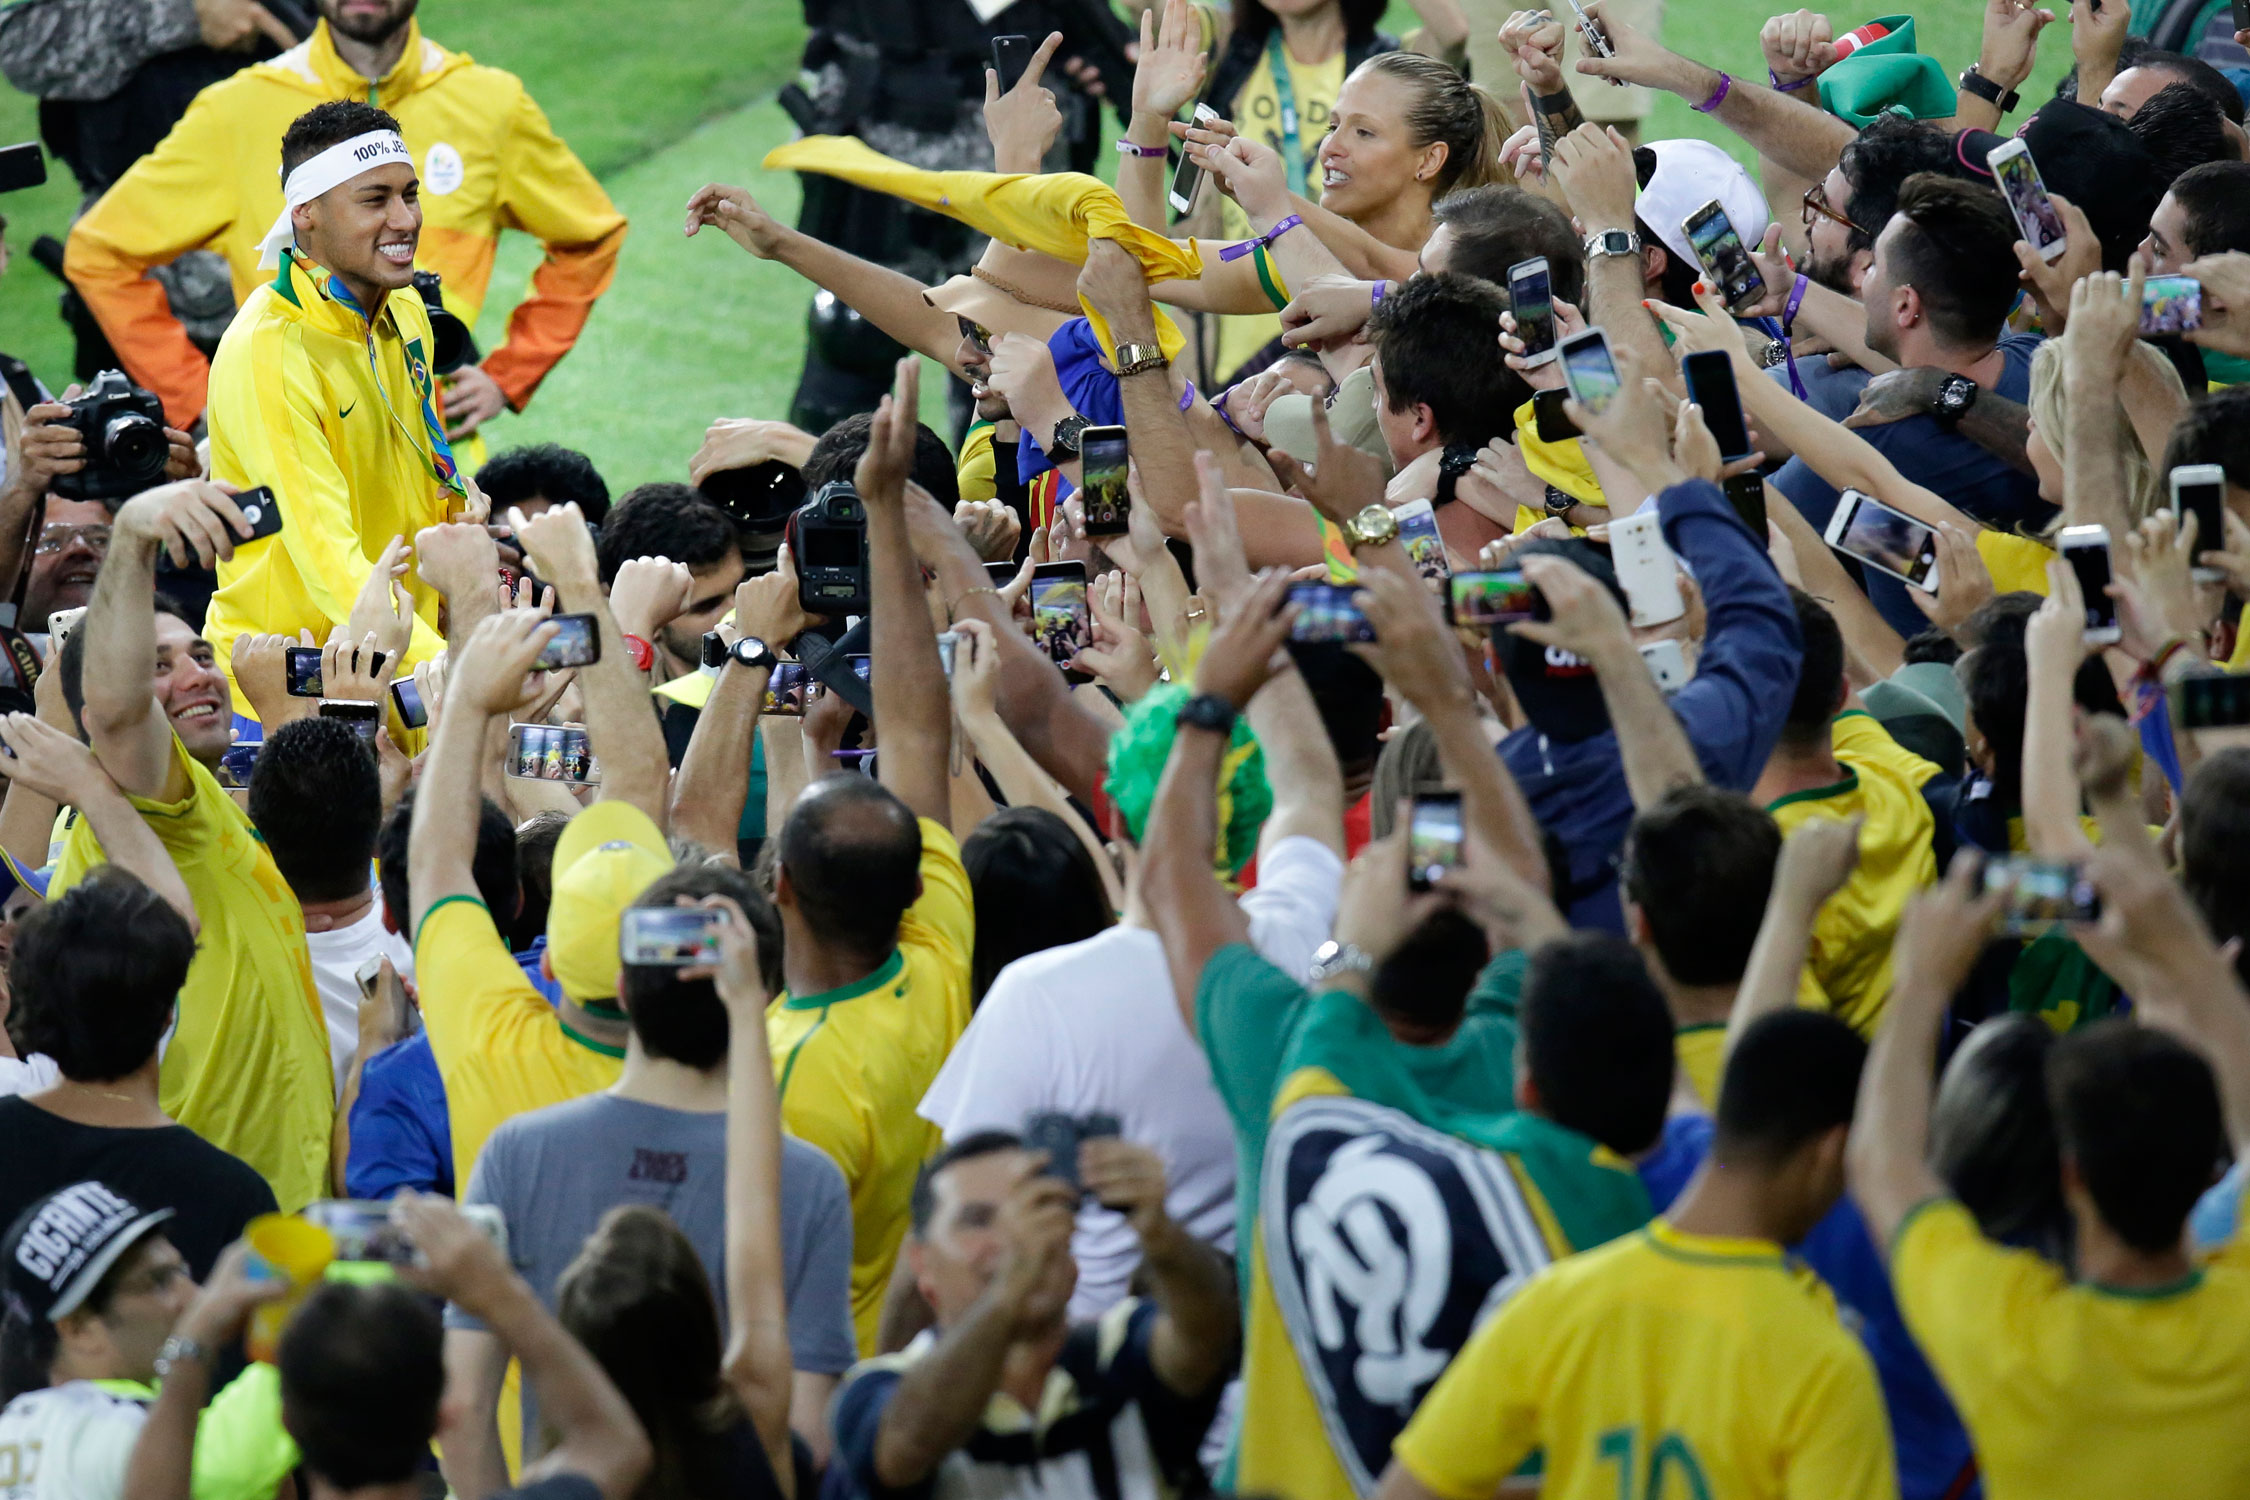 Neymar soaks up the love after leading Brazil to the Olympic gold medal at the Maracanã in Rio de Janeiro.